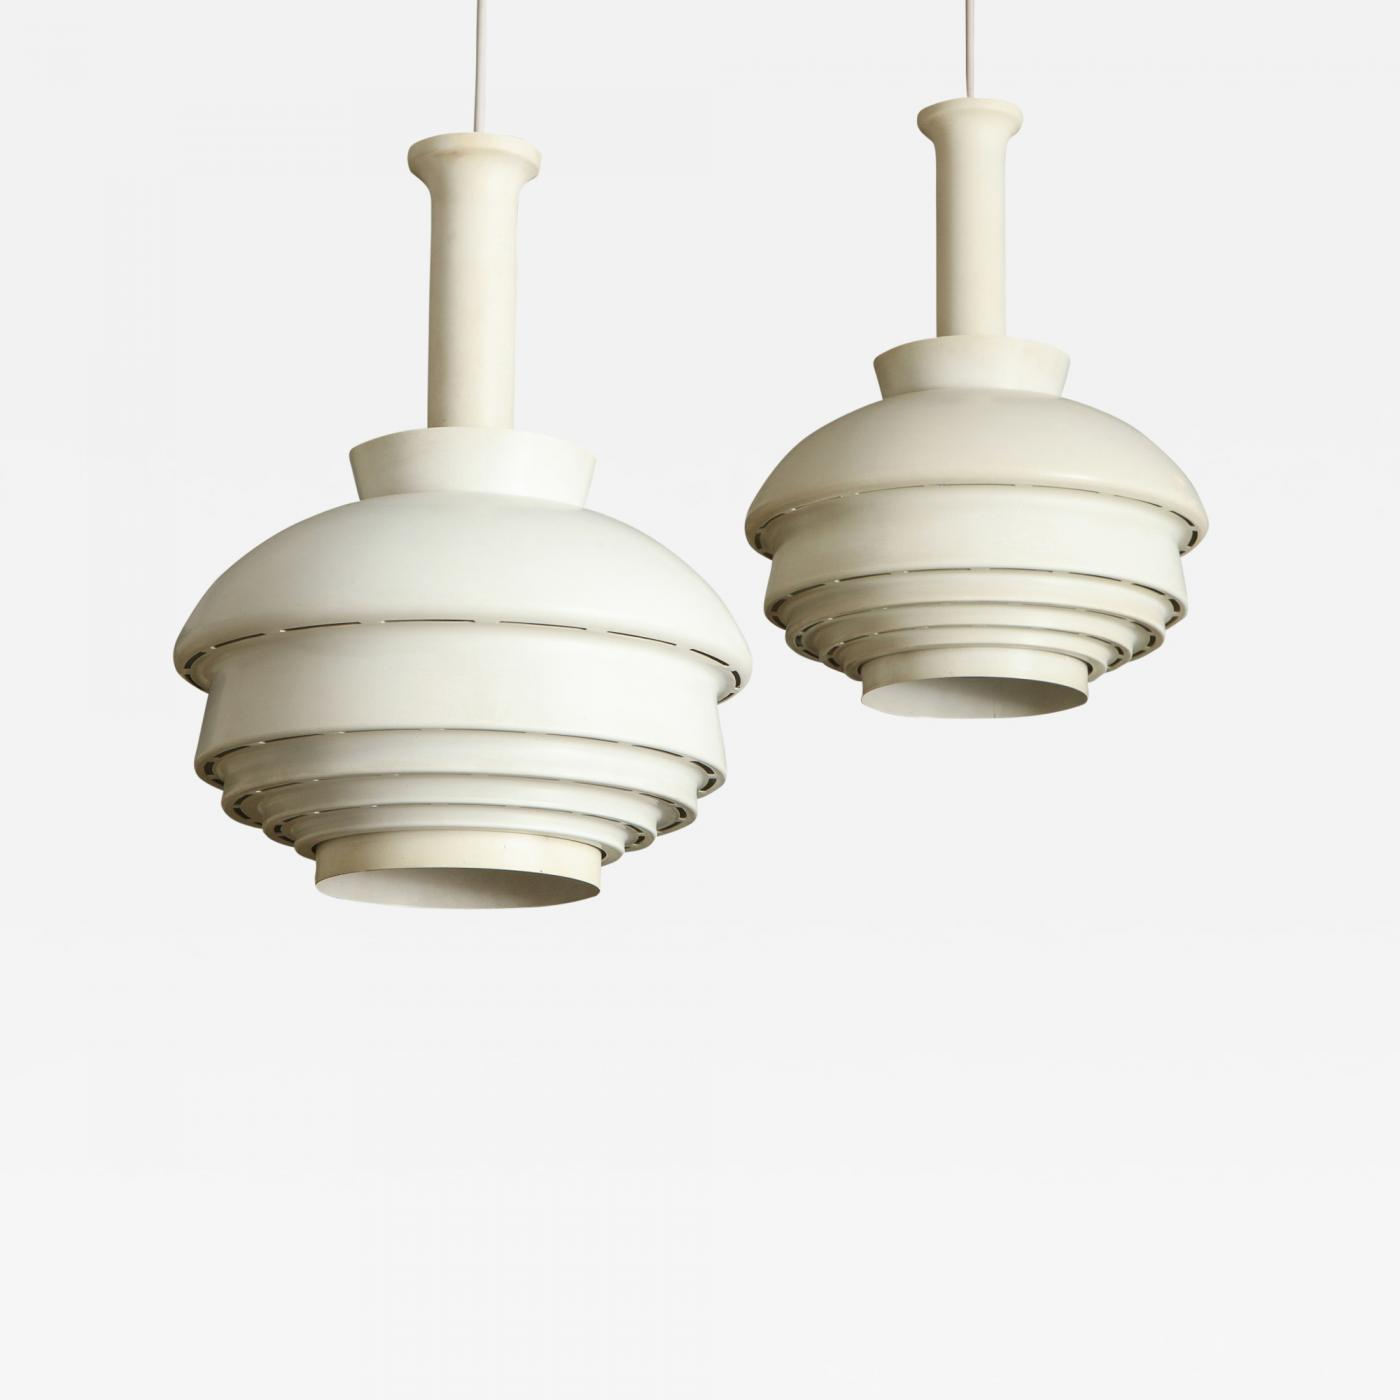 Pendant Lighting Alvar Aalto Two Alvar Aalto A335b Pendant Lights